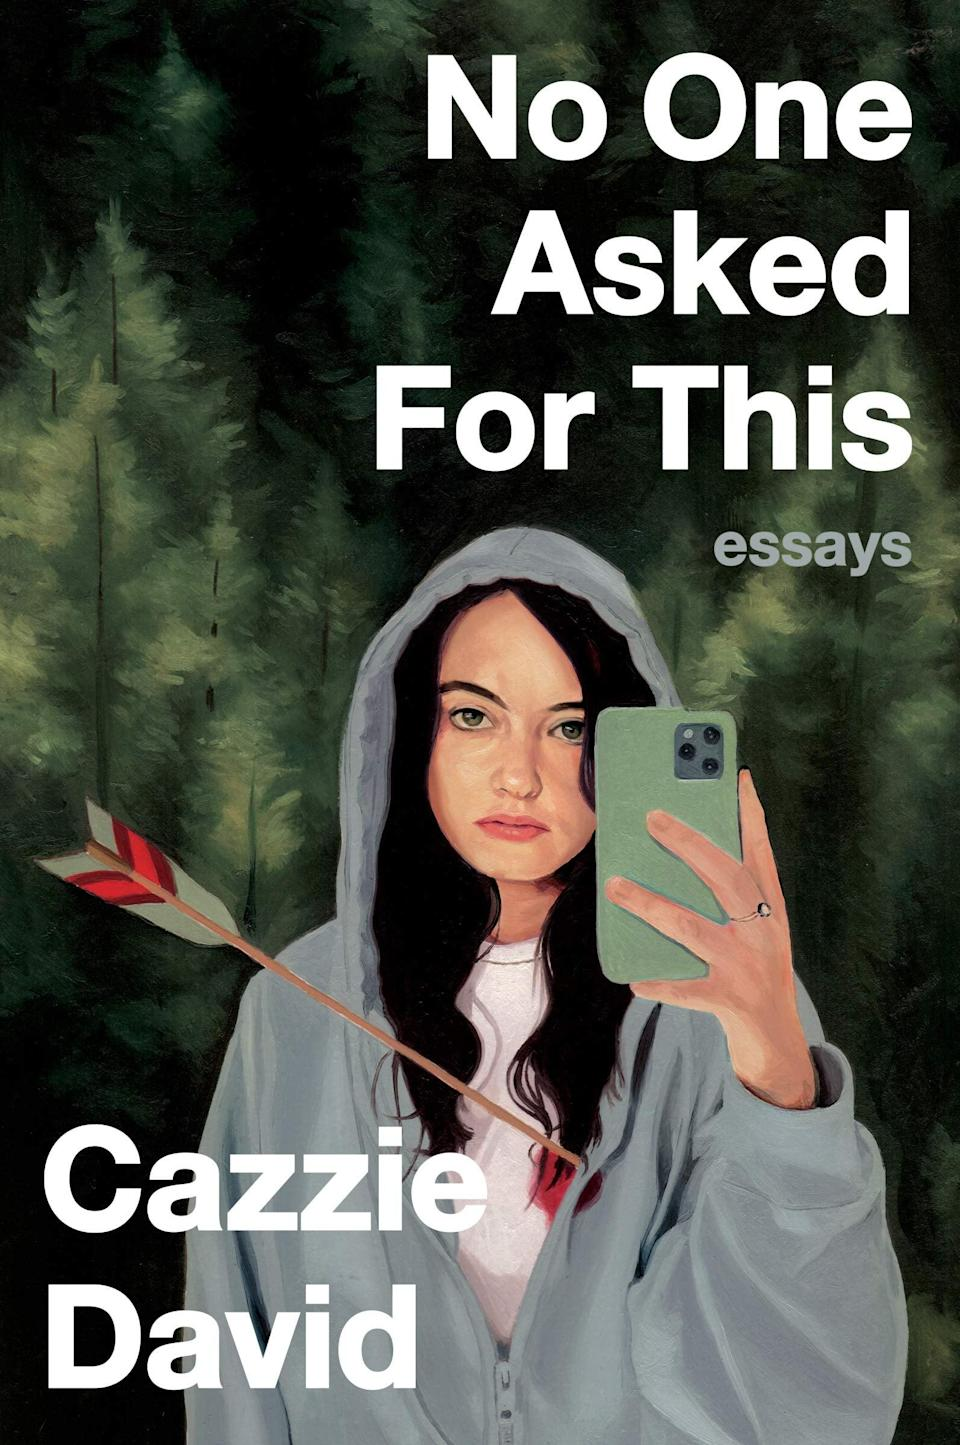 "<p>The sharp, anxiety-fueled essays in Cazzie David's <span><strong>No One Asked For This</strong></span> are exactly what the world needs after a year like 2020. David tackles social anxiety, shame spirals, and existential dread with the kind of gallows humor that will surely make her famous dad, <a class=""link rapid-noclick-resp"" href=""https://www.popsugar.com/latest/Larry-David"" rel=""nofollow noopener"" target=""_blank"" data-ylk=""slk:Larry David"">Larry David</a>, proud.</p> <p><em>Out Nov. 17</em></p>"